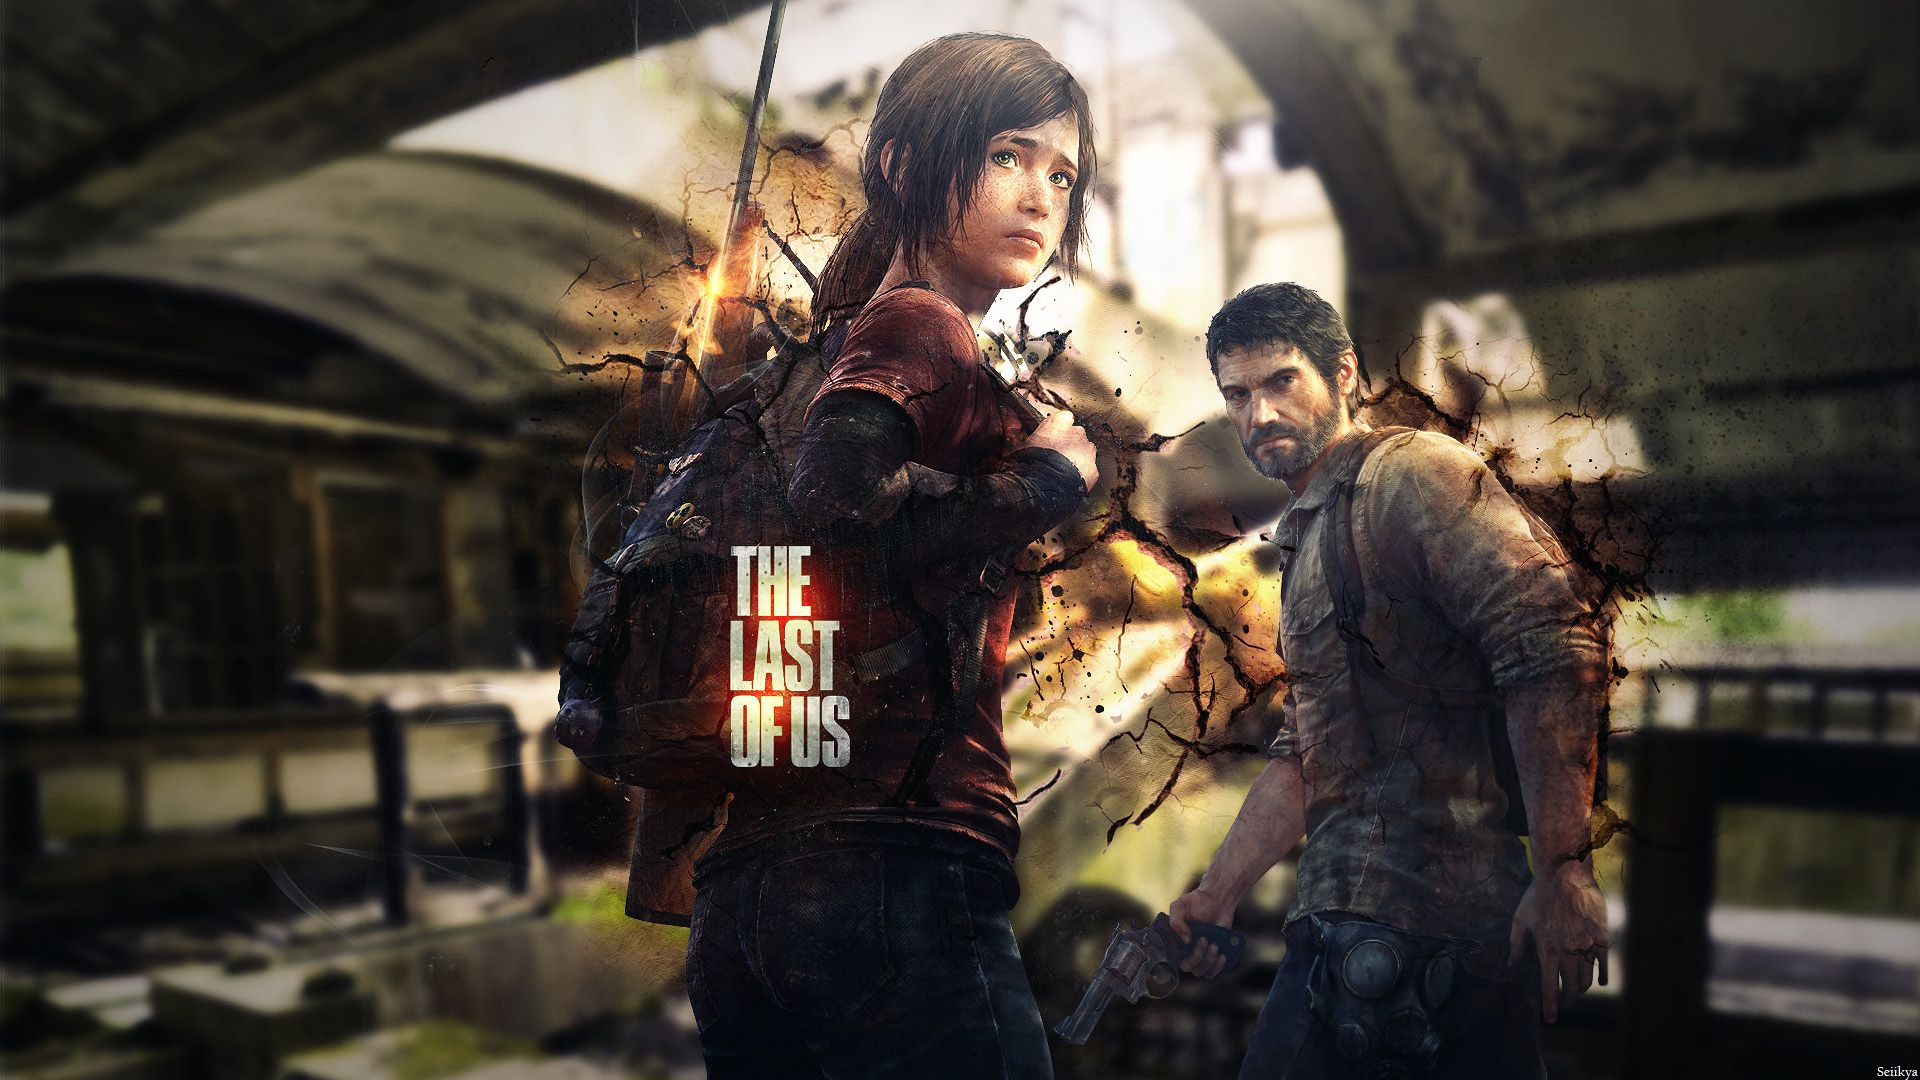 The Last Of Us Game Ellie And Joel Hd Wallpaper Hogar